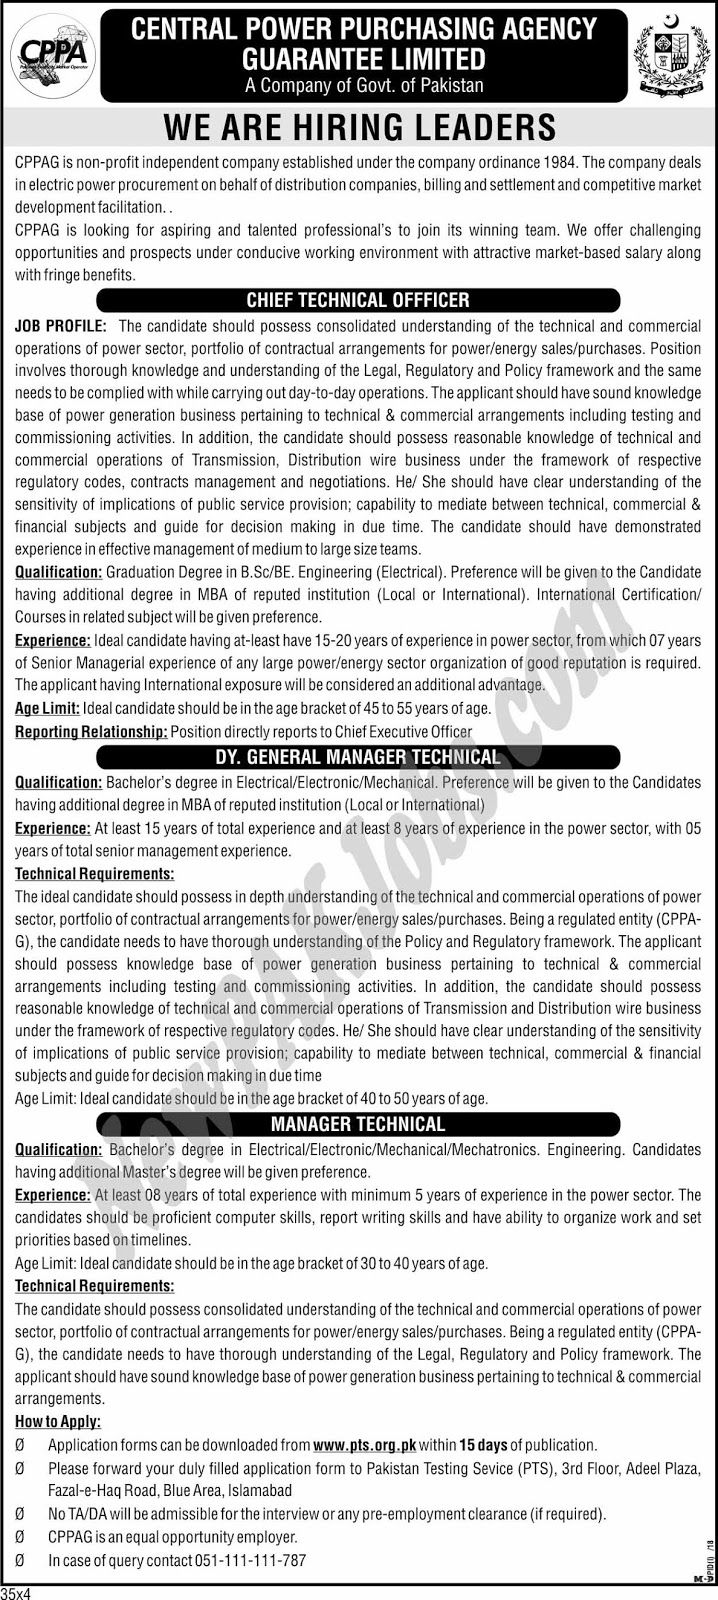 PTS Jobs in Central Power Purchasing Agency newpakjobs